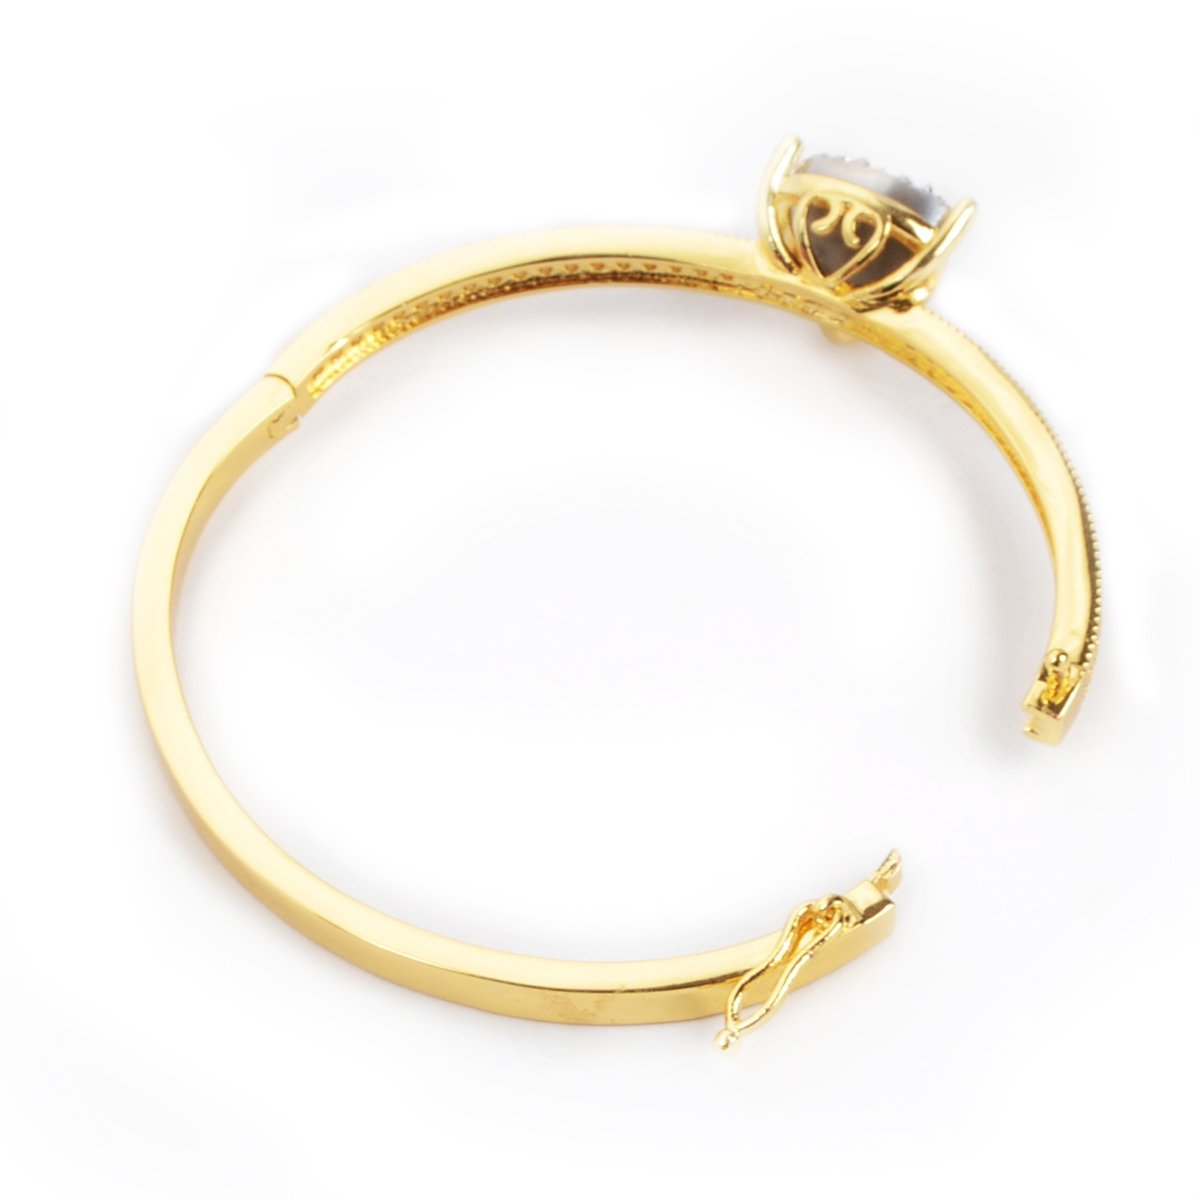 ZENGORI 12mm Triangle Gold Plated Brass Natural Agate Druzy Bangle Bracelet Pave with Zircon